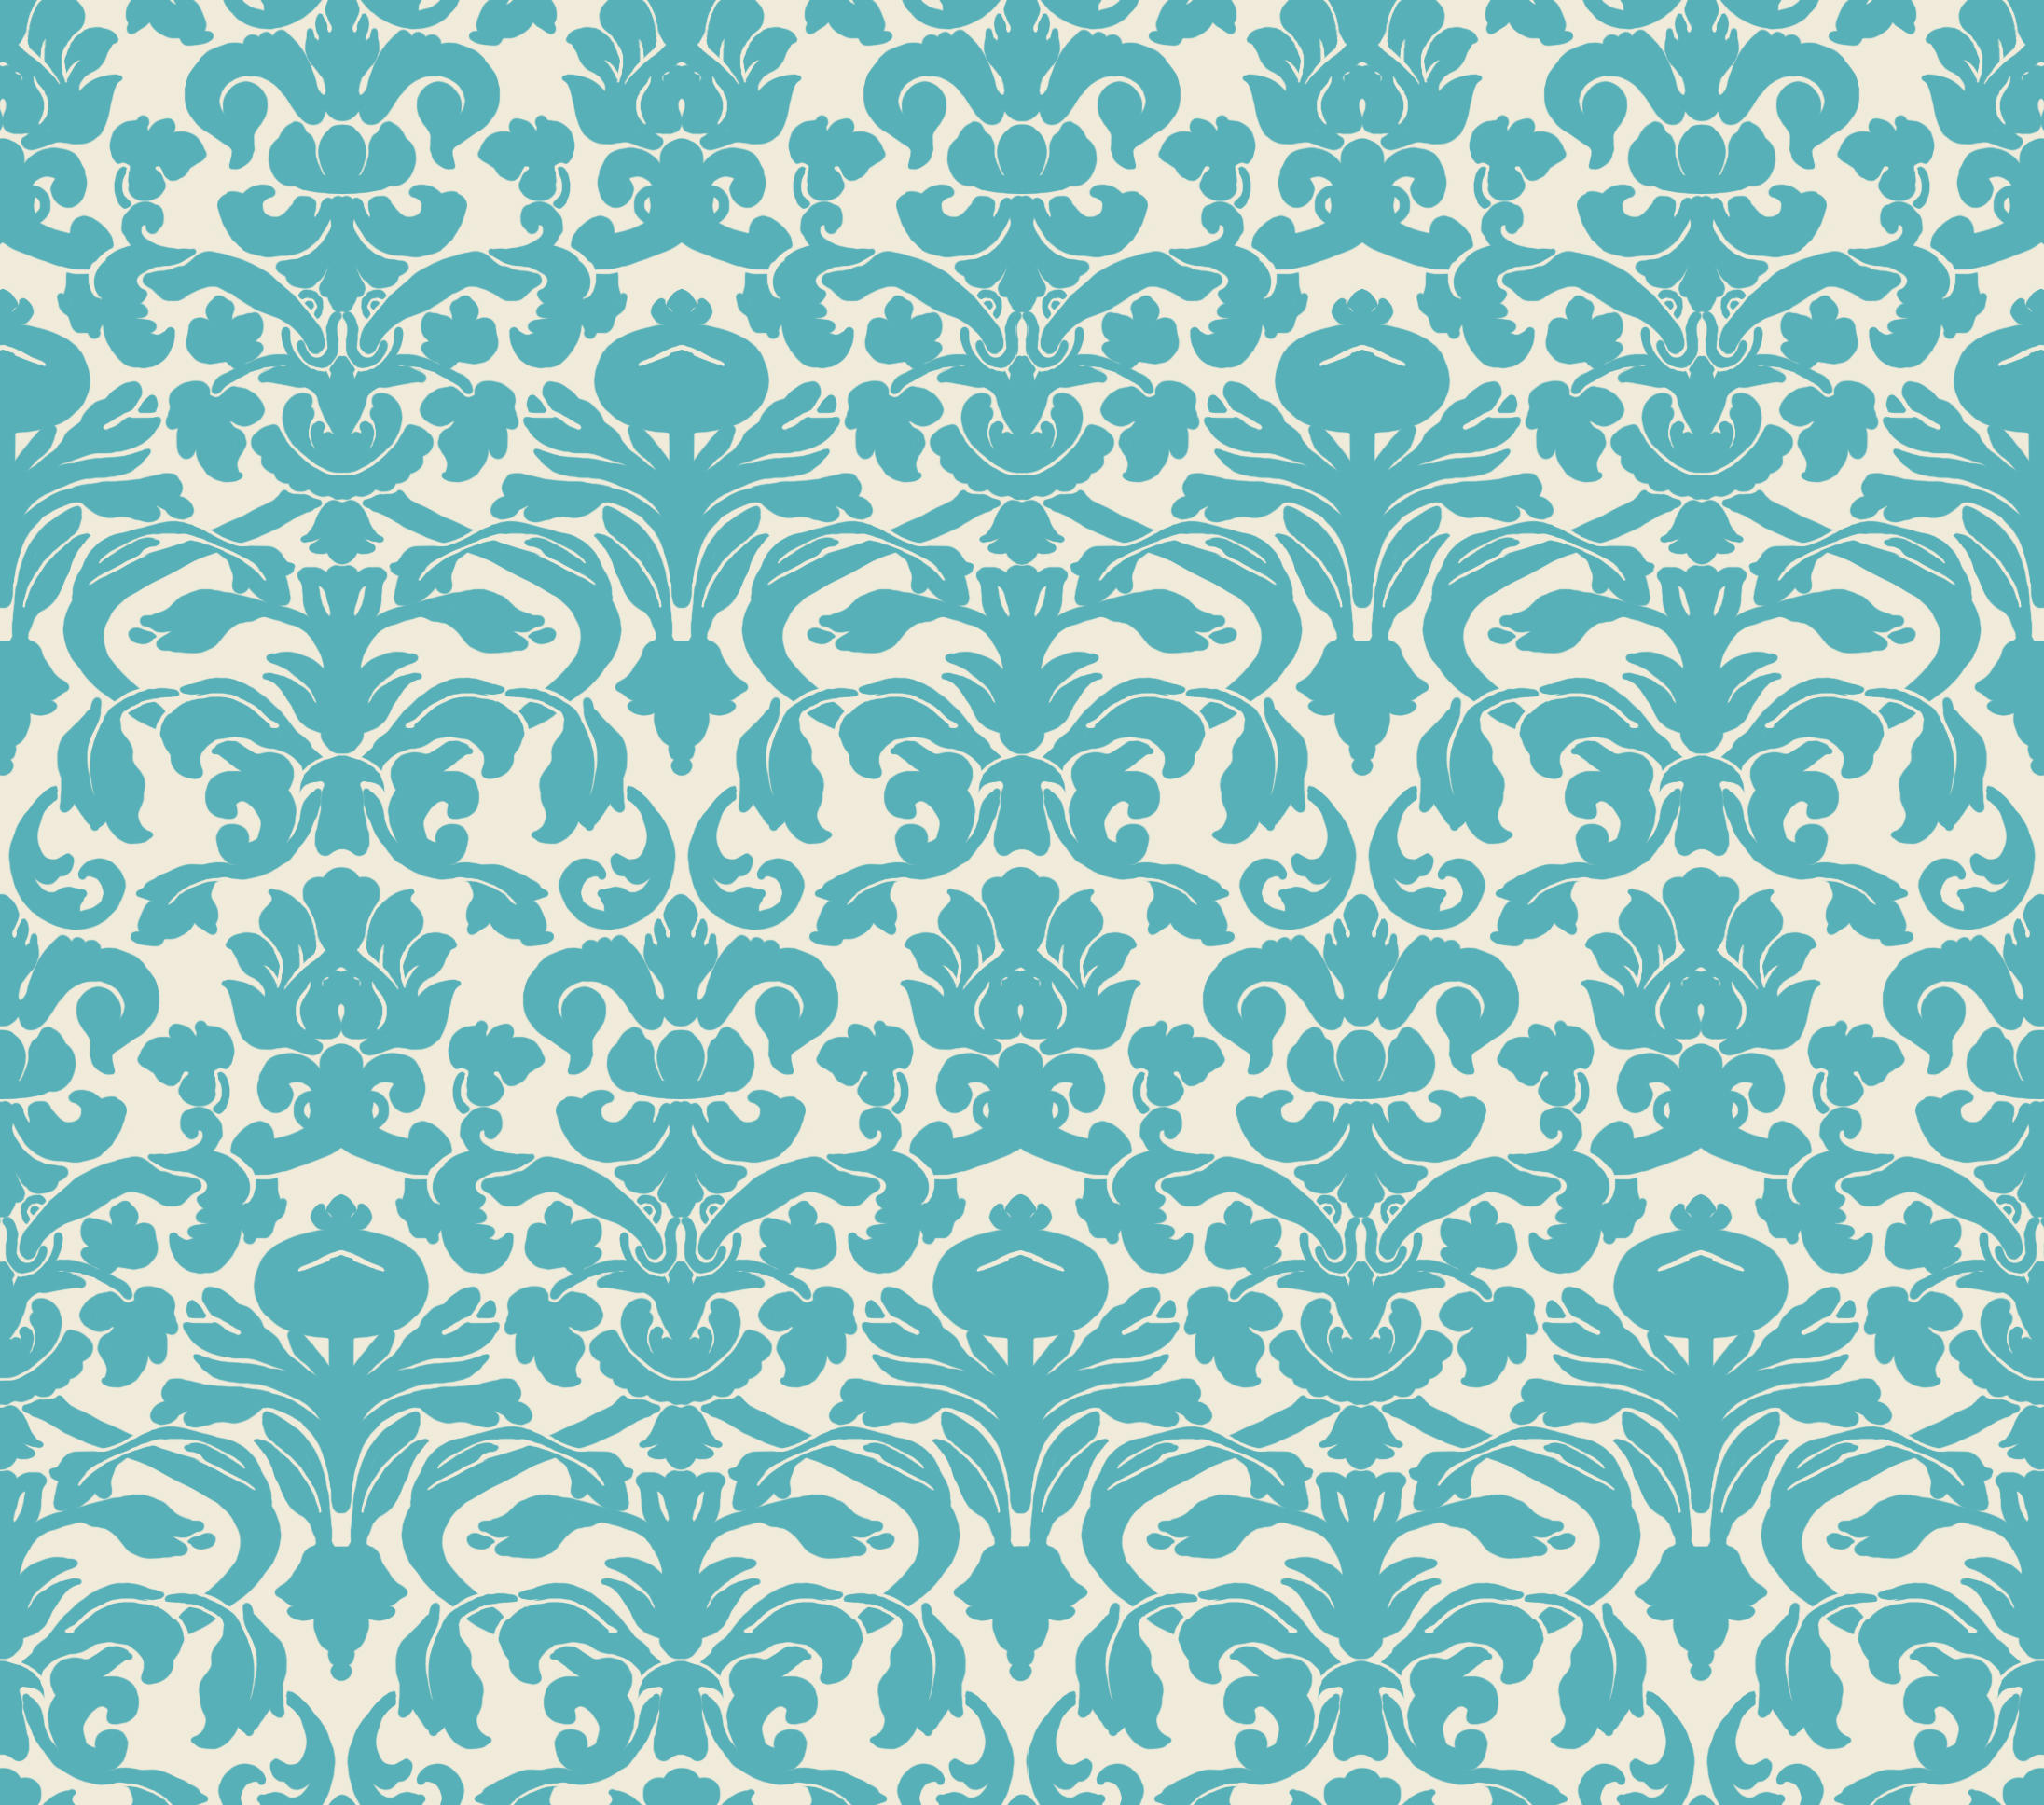 Damask wallpaper by insurrectionx on deviantart for Paper design wallpaper